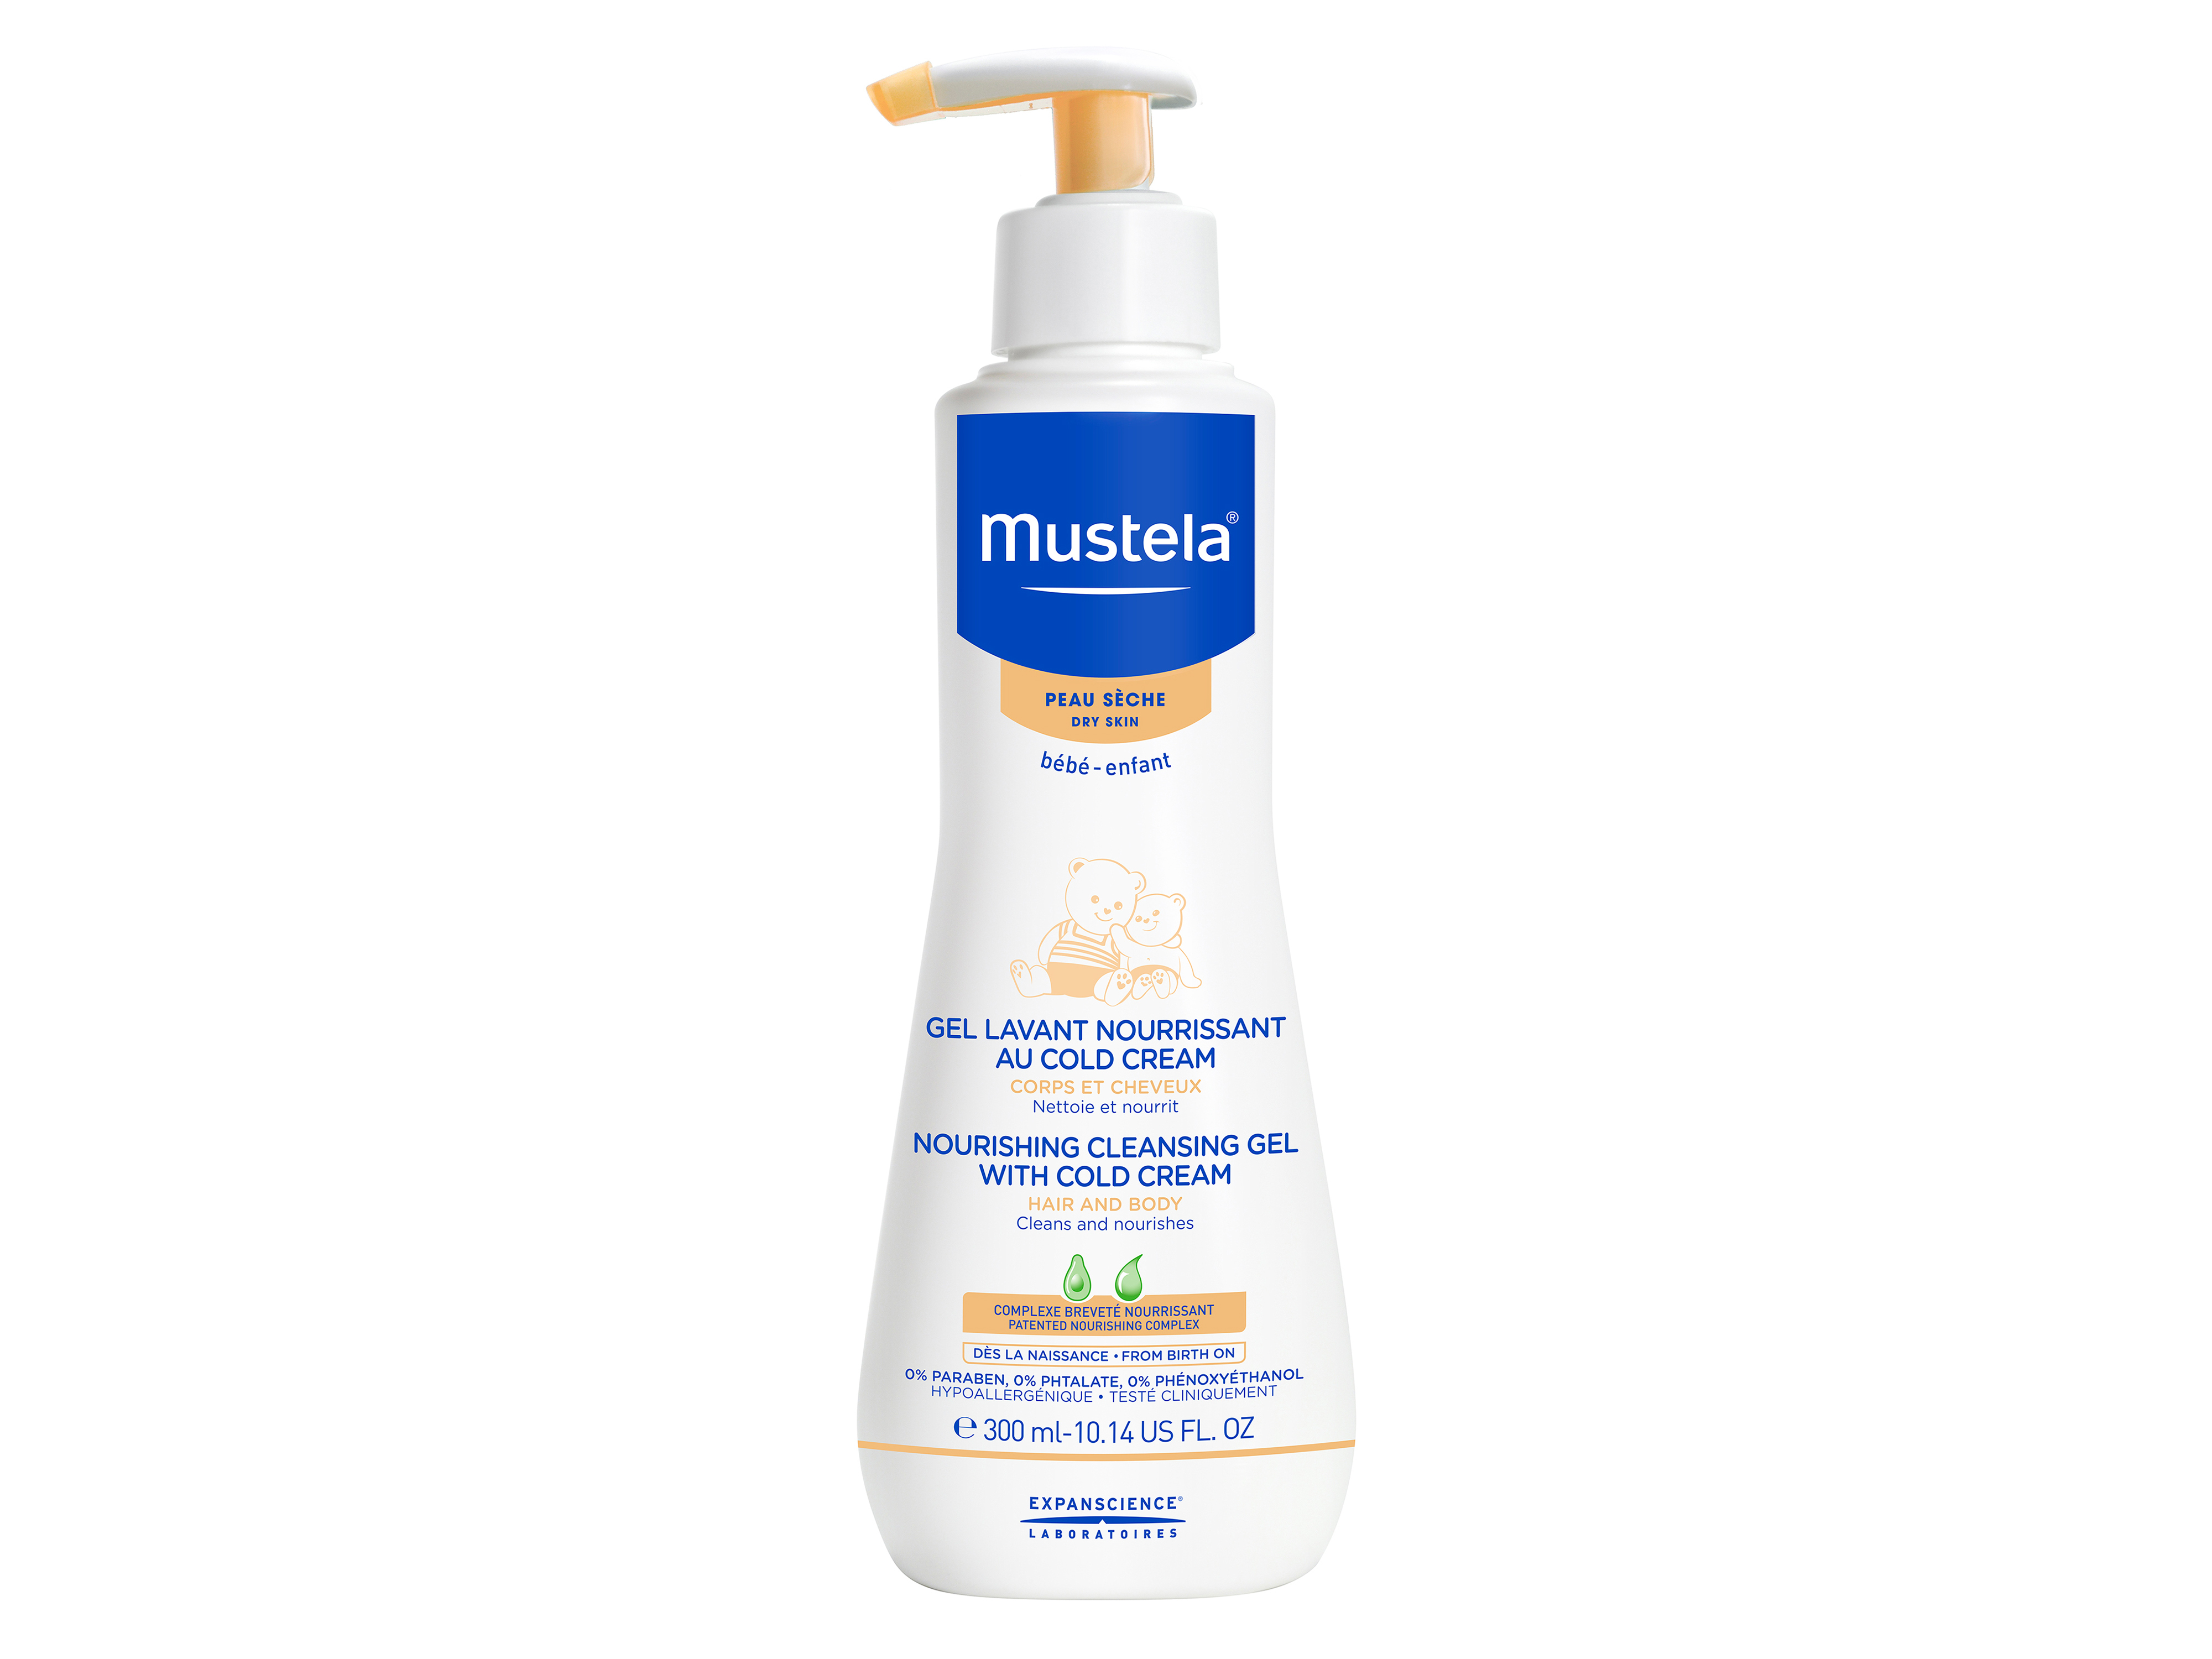 Mustela Nourishing Cleansing Gel, 300 ml